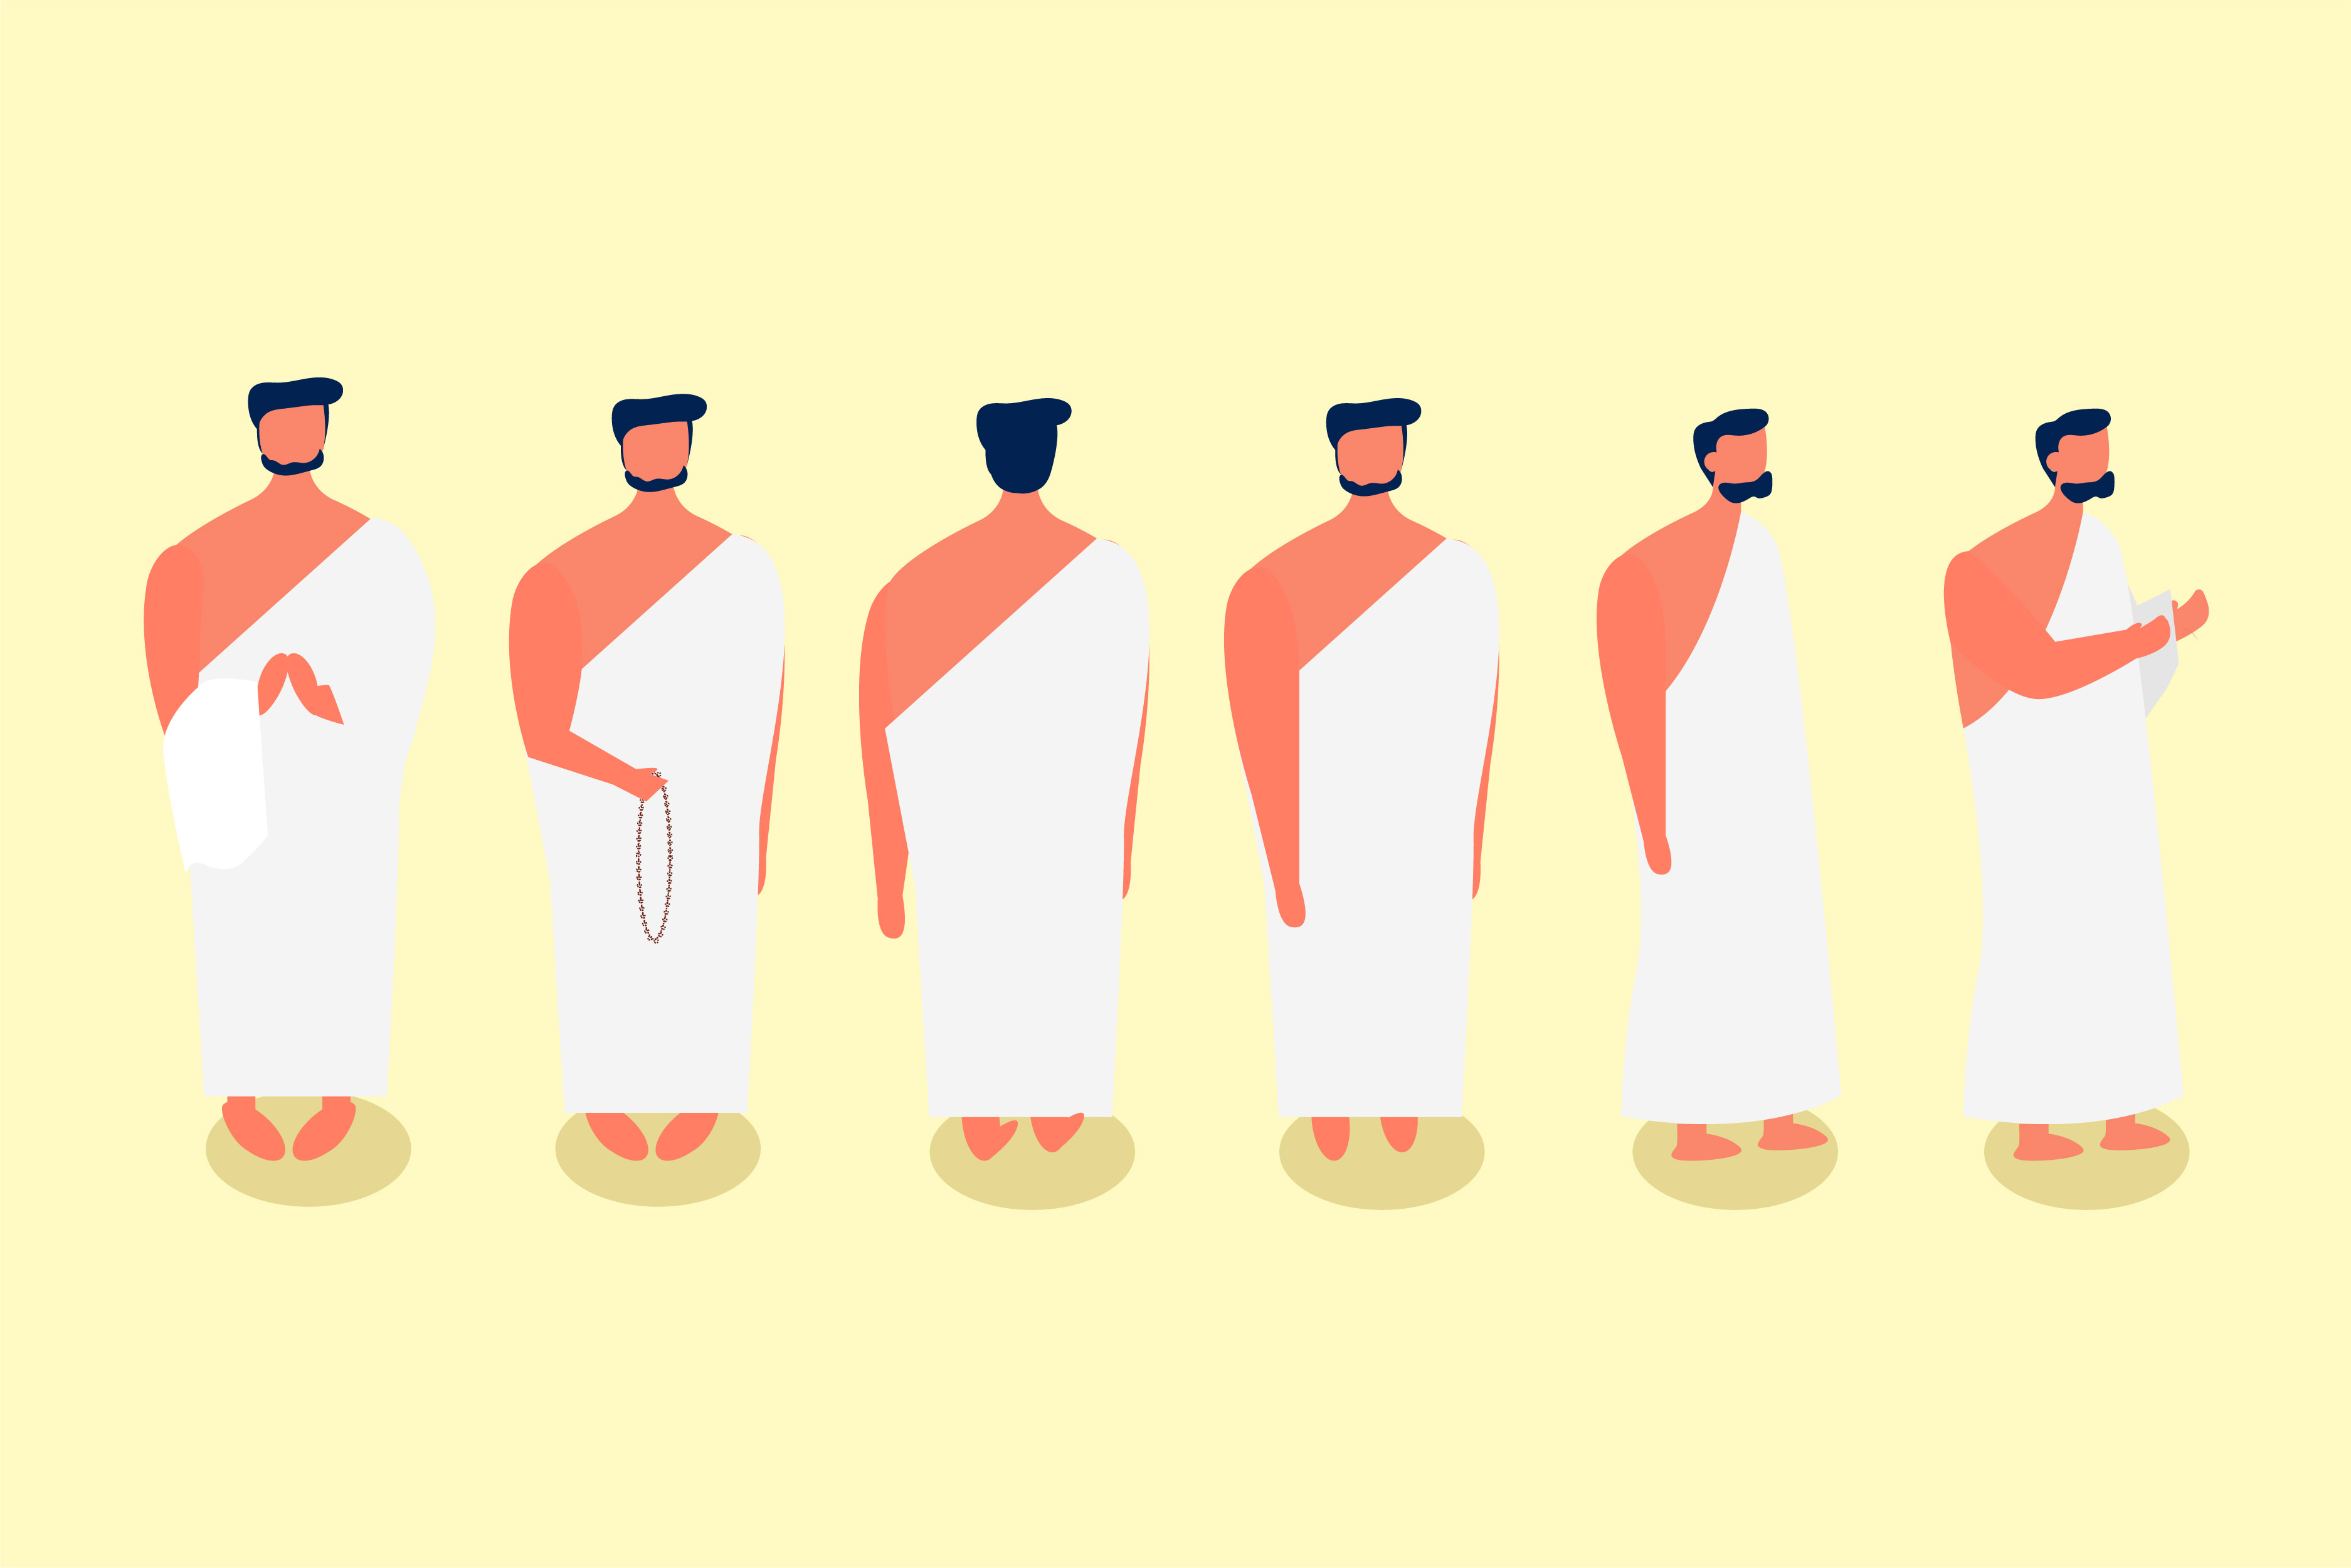 Download Free Illustration Hajj Muslim Man Pilgrim Graphic By Griyolabs for Cricut Explore, Silhouette and other cutting machines.